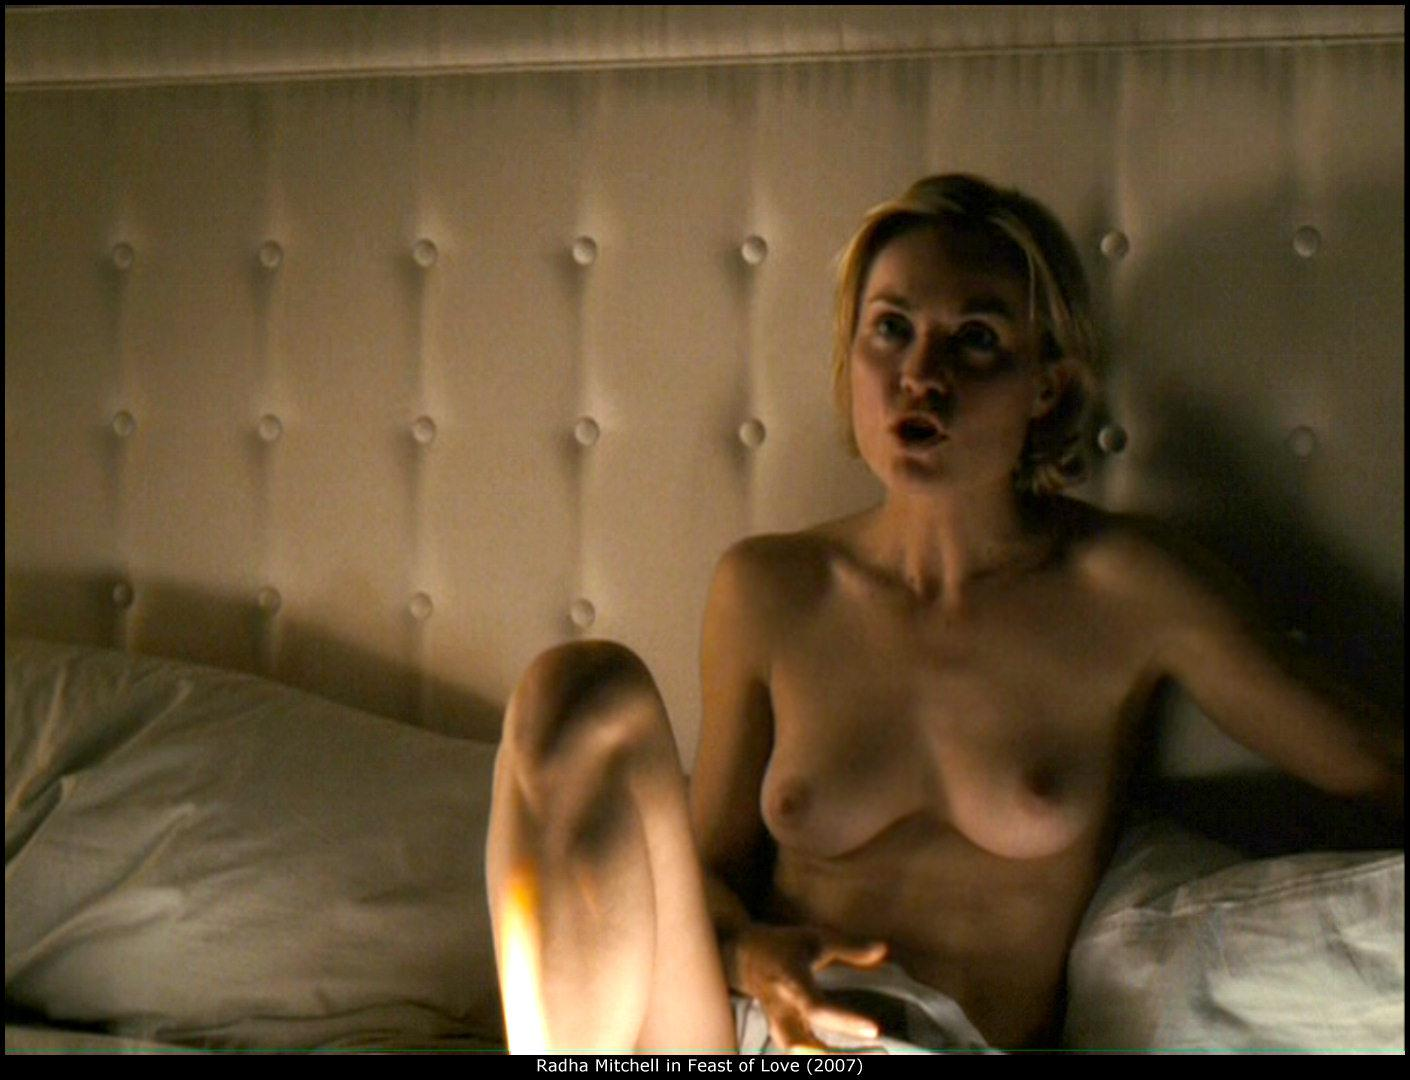 Radha Mitchell real